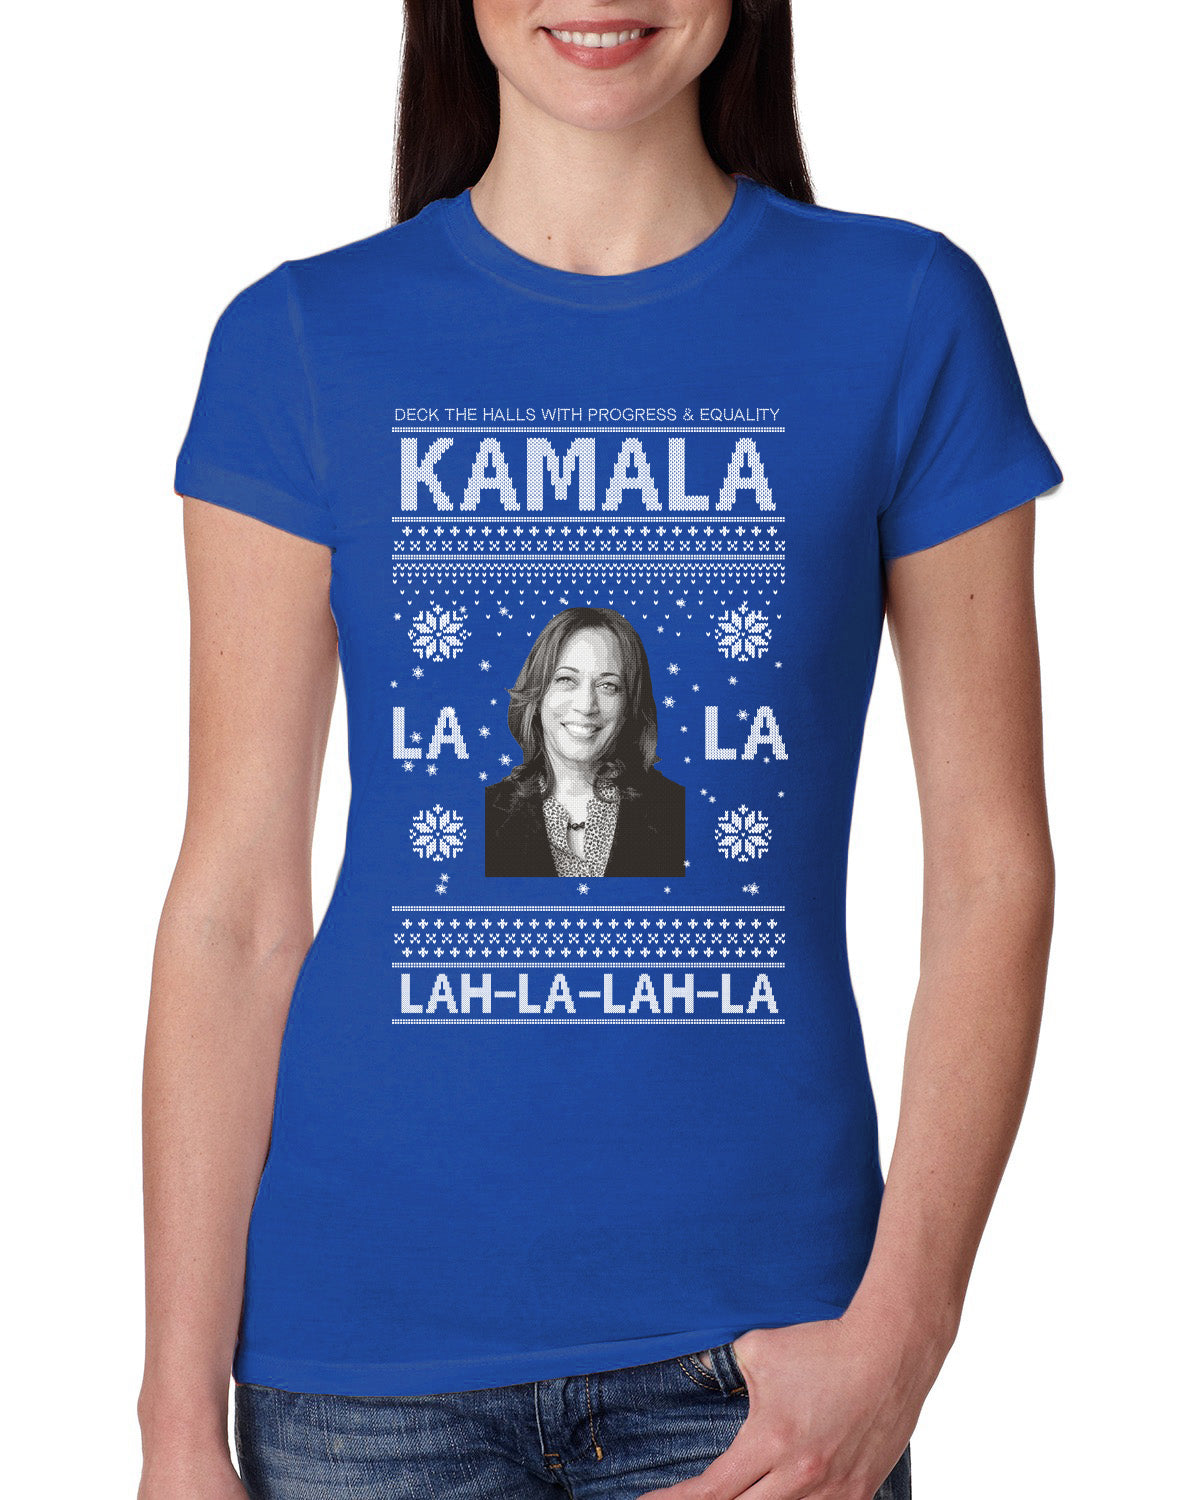 Kamala La La Lah-La-Lah-La Harris 2020 Ugly Christmas Sweater Womens Slim Fit Junior Tee